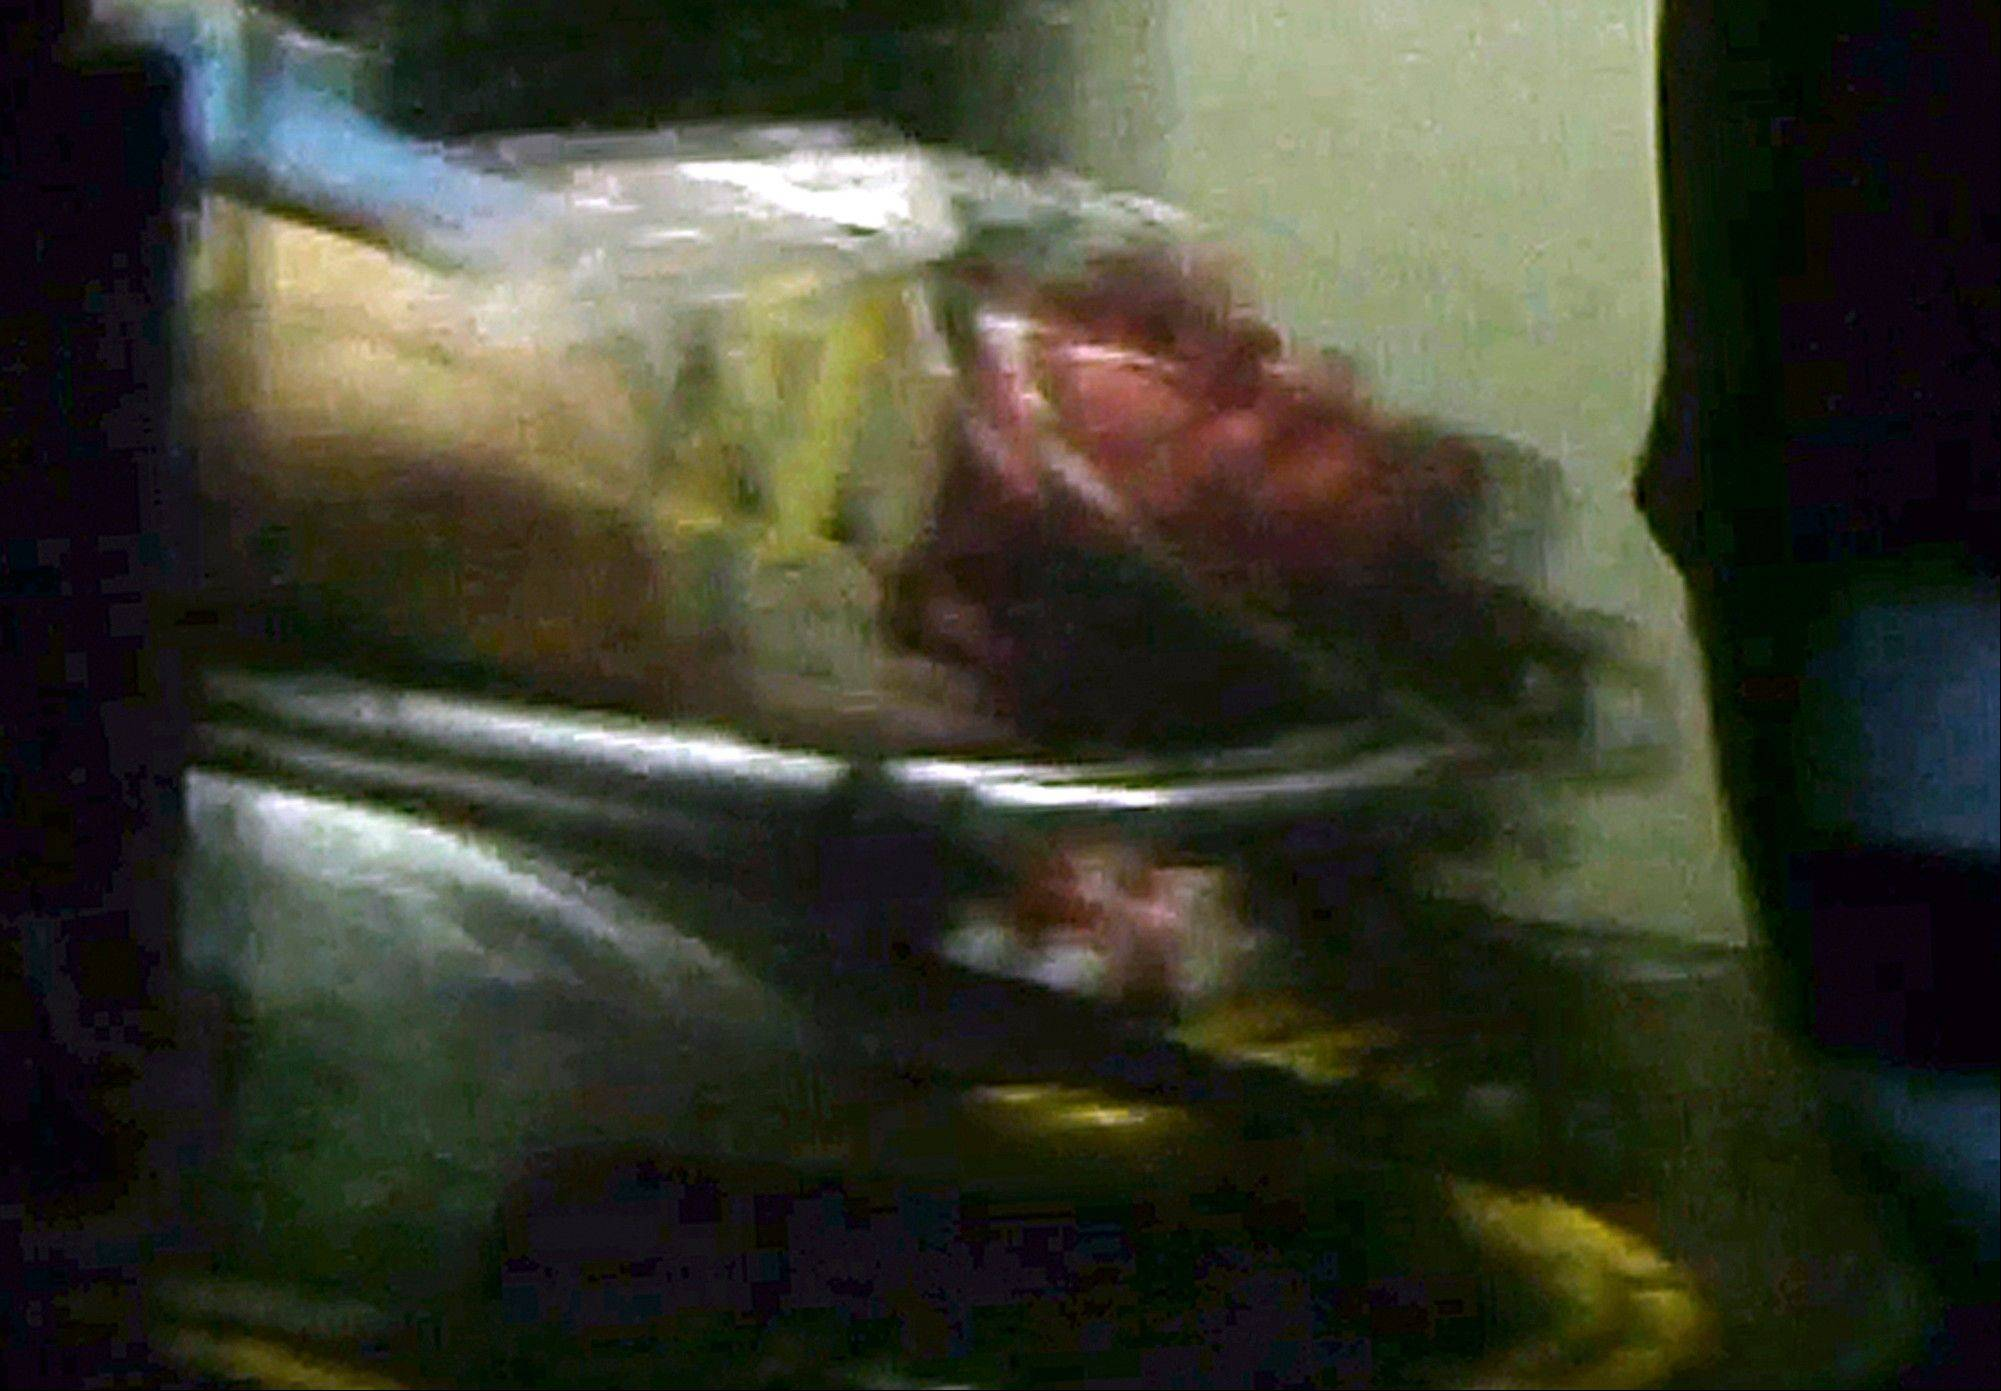 ALTERNATE CROP - This still frame from video shows Boston Marathon bombing suspect Dzhokhar Tsarnaev visible through an ambulance after he was captured in Watertown, Mass., Friday, April 19, 2013. The 19-year-old college student wanted in the Boston Marathon bombings was taken into custody Friday evening after a manhunt that left the city virtually paralyzed and his older brother and accomplice dead.